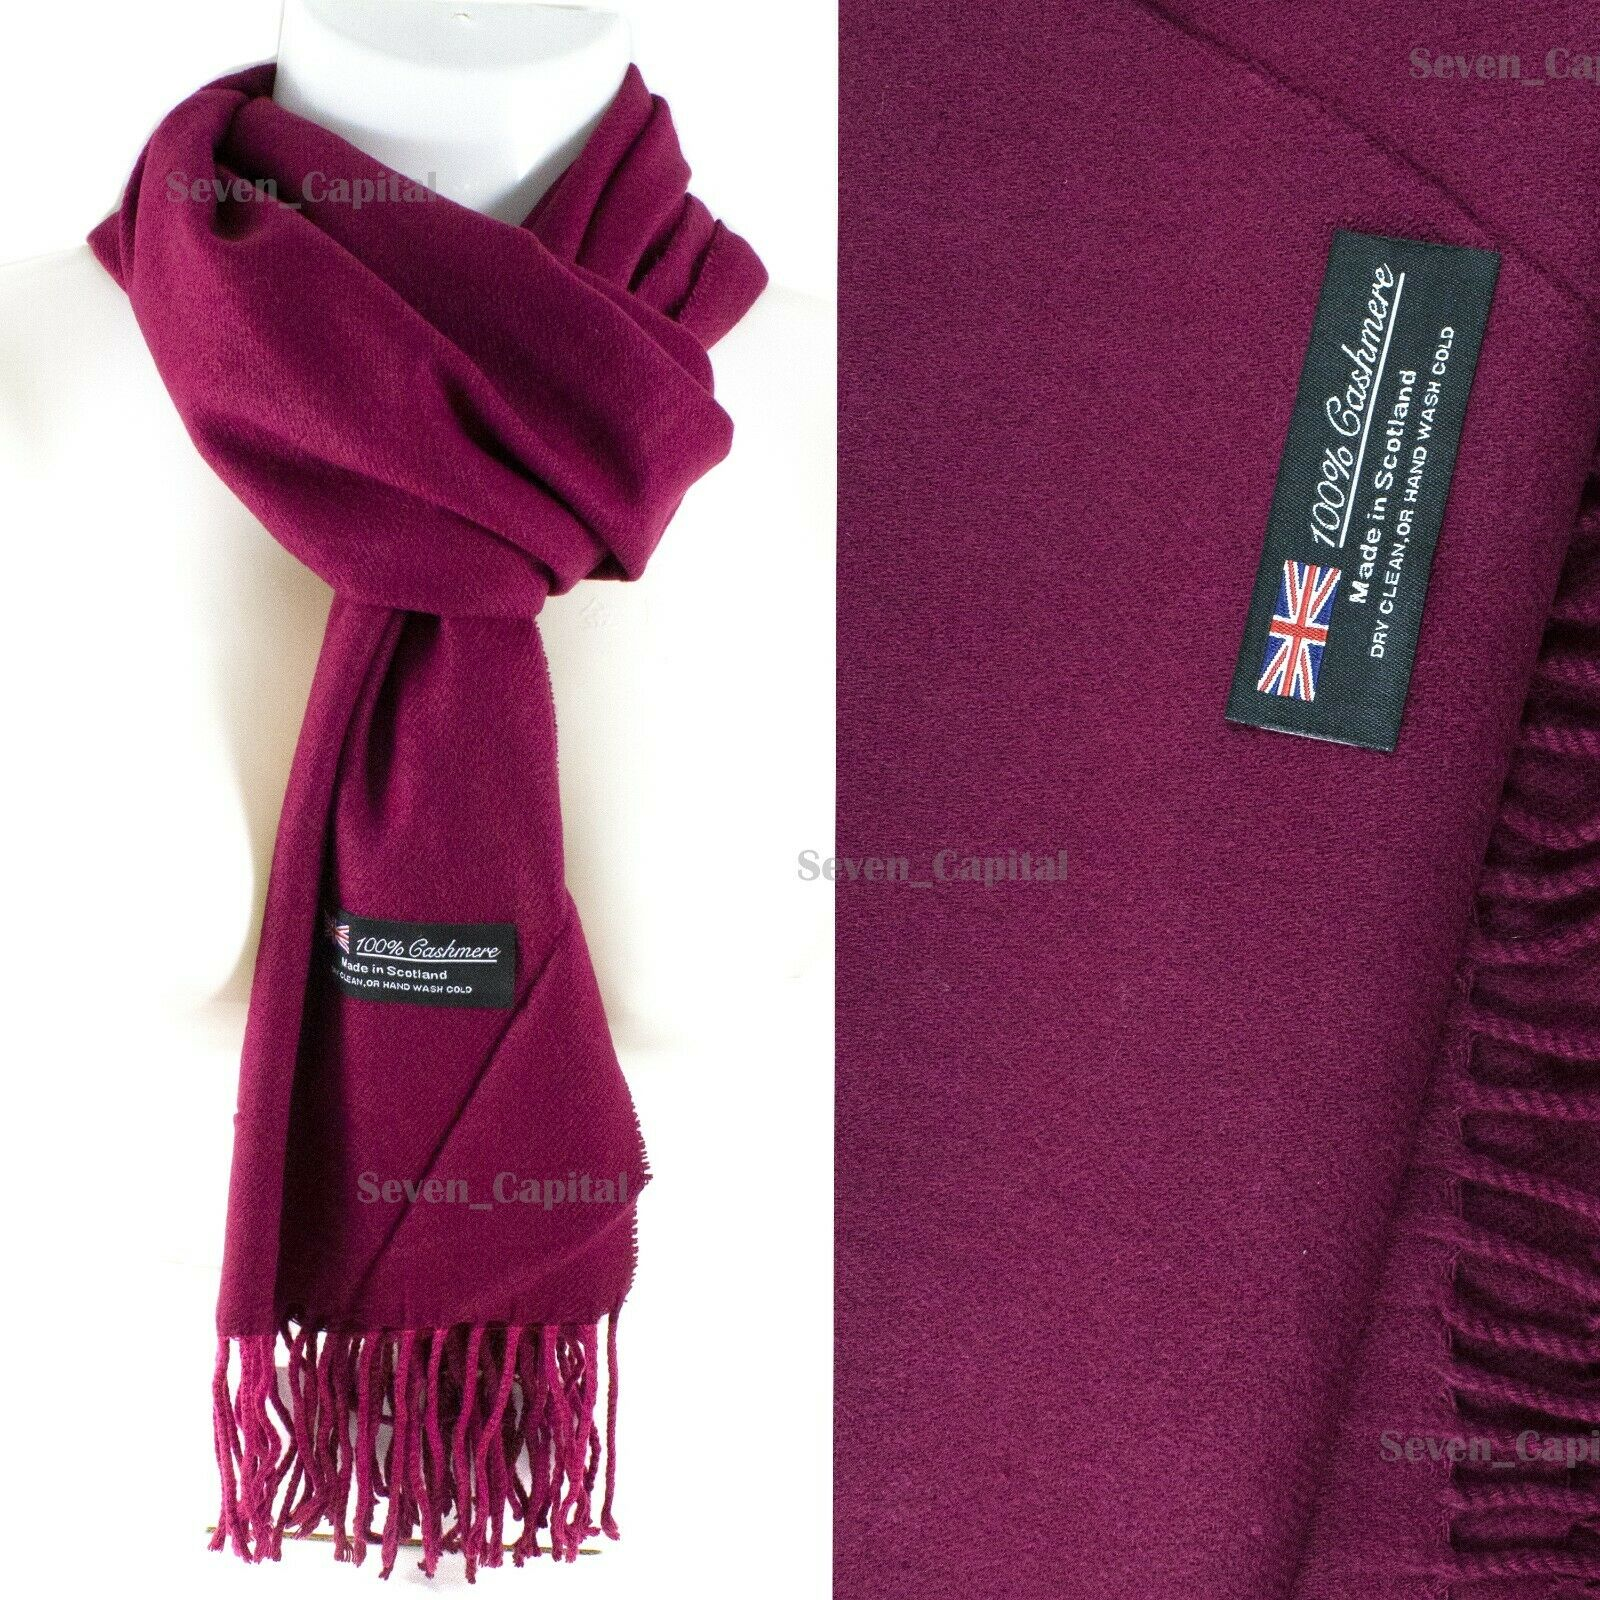 Mens Womens Winter Warm SCOTLAND Made 100% CASHMERE Scarf Scarves Plaid Wool 44. Plain: Wine Red